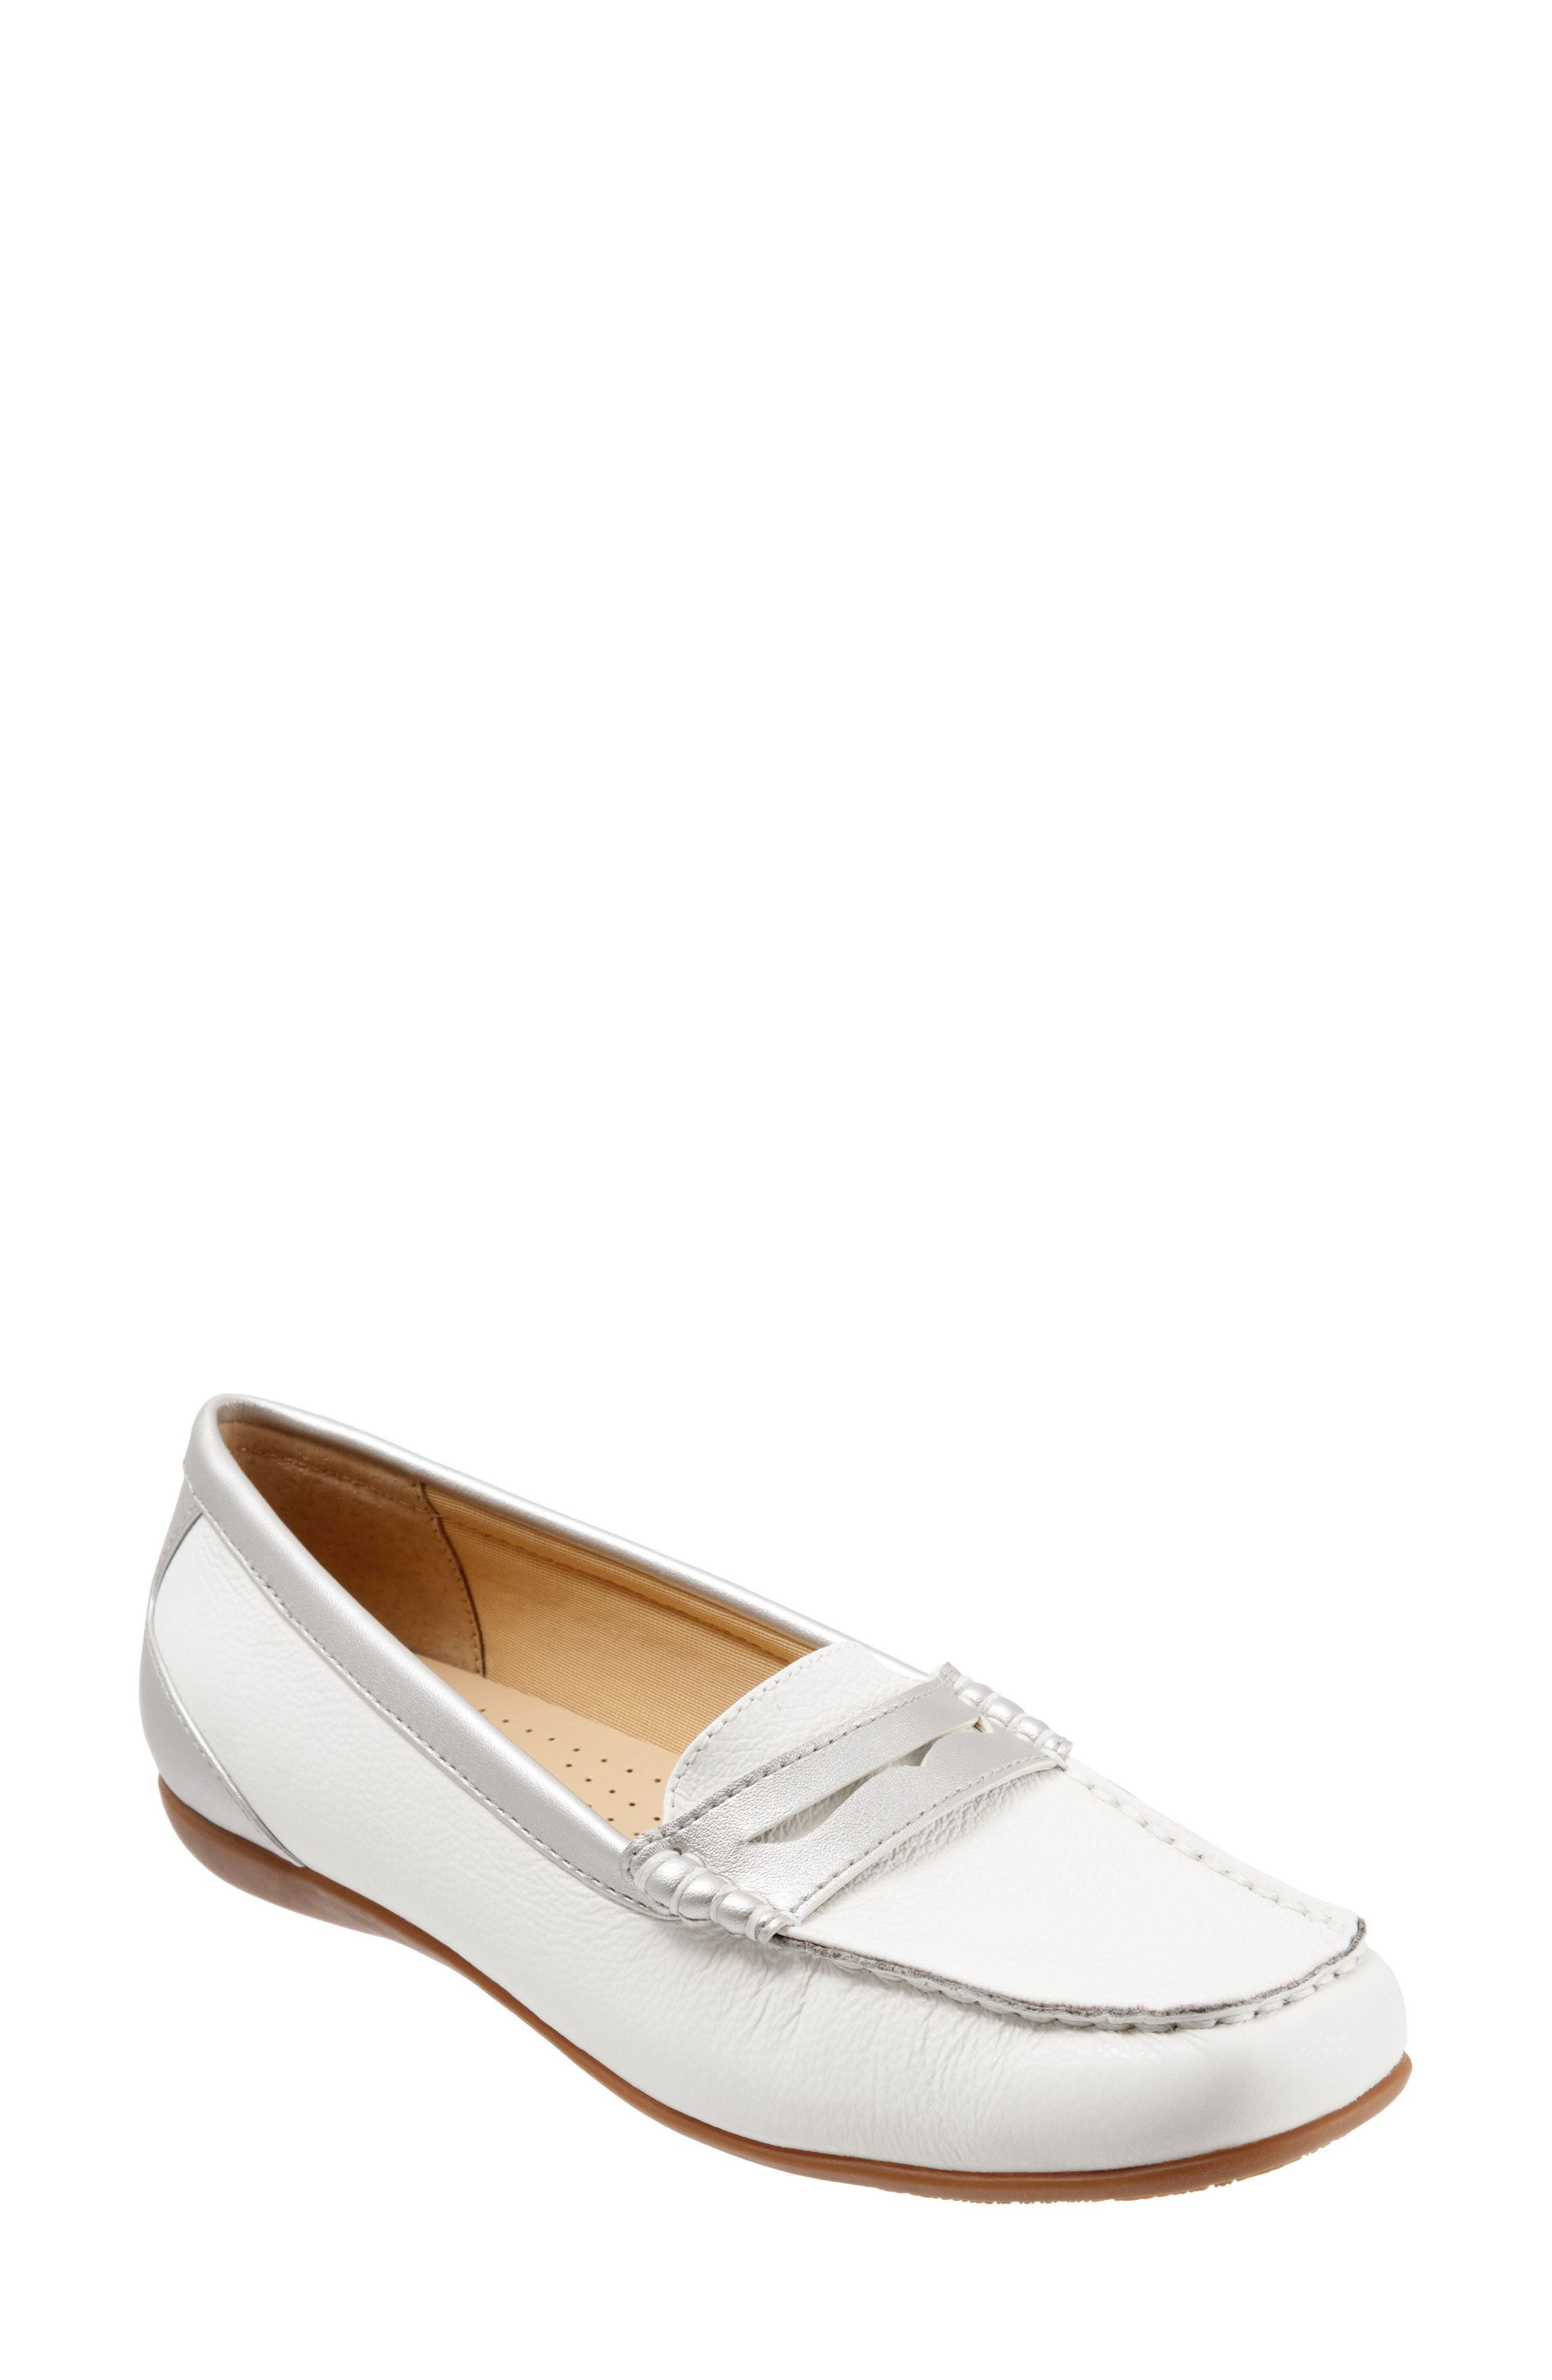 TROTTERS Staci Penny Loafer